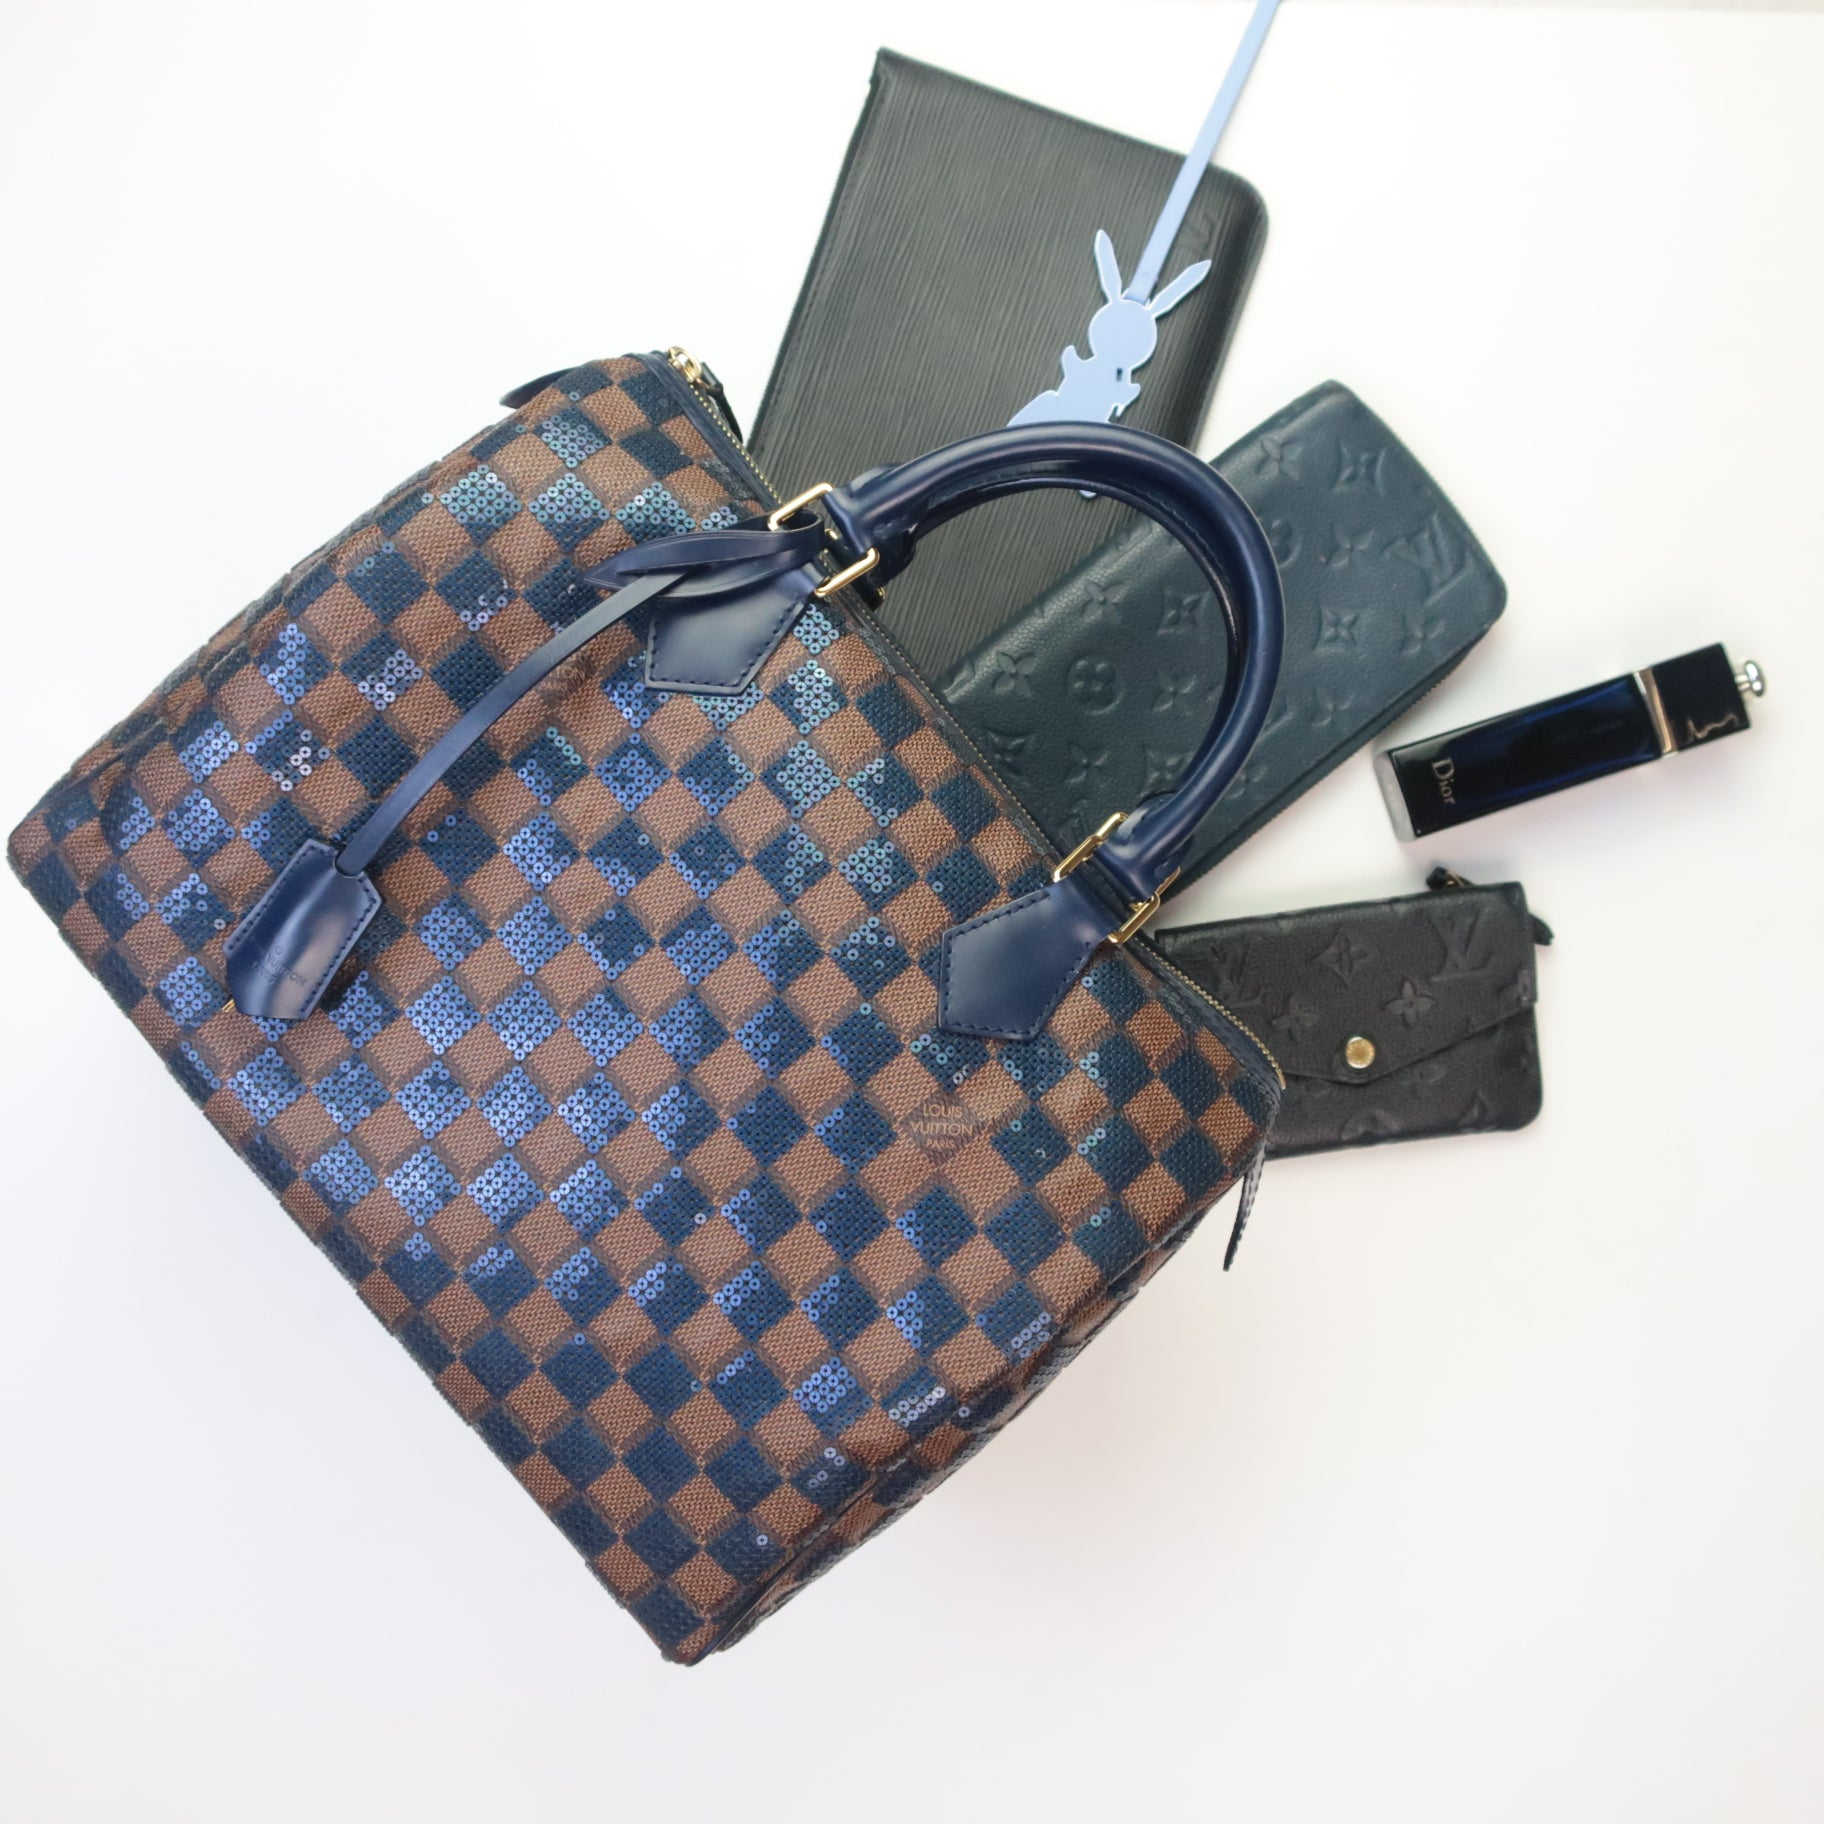 Which Louis Vuitton Classic Bag To Buy: LV Alma vs LV Speedy LV Speedy Paillettes what fits